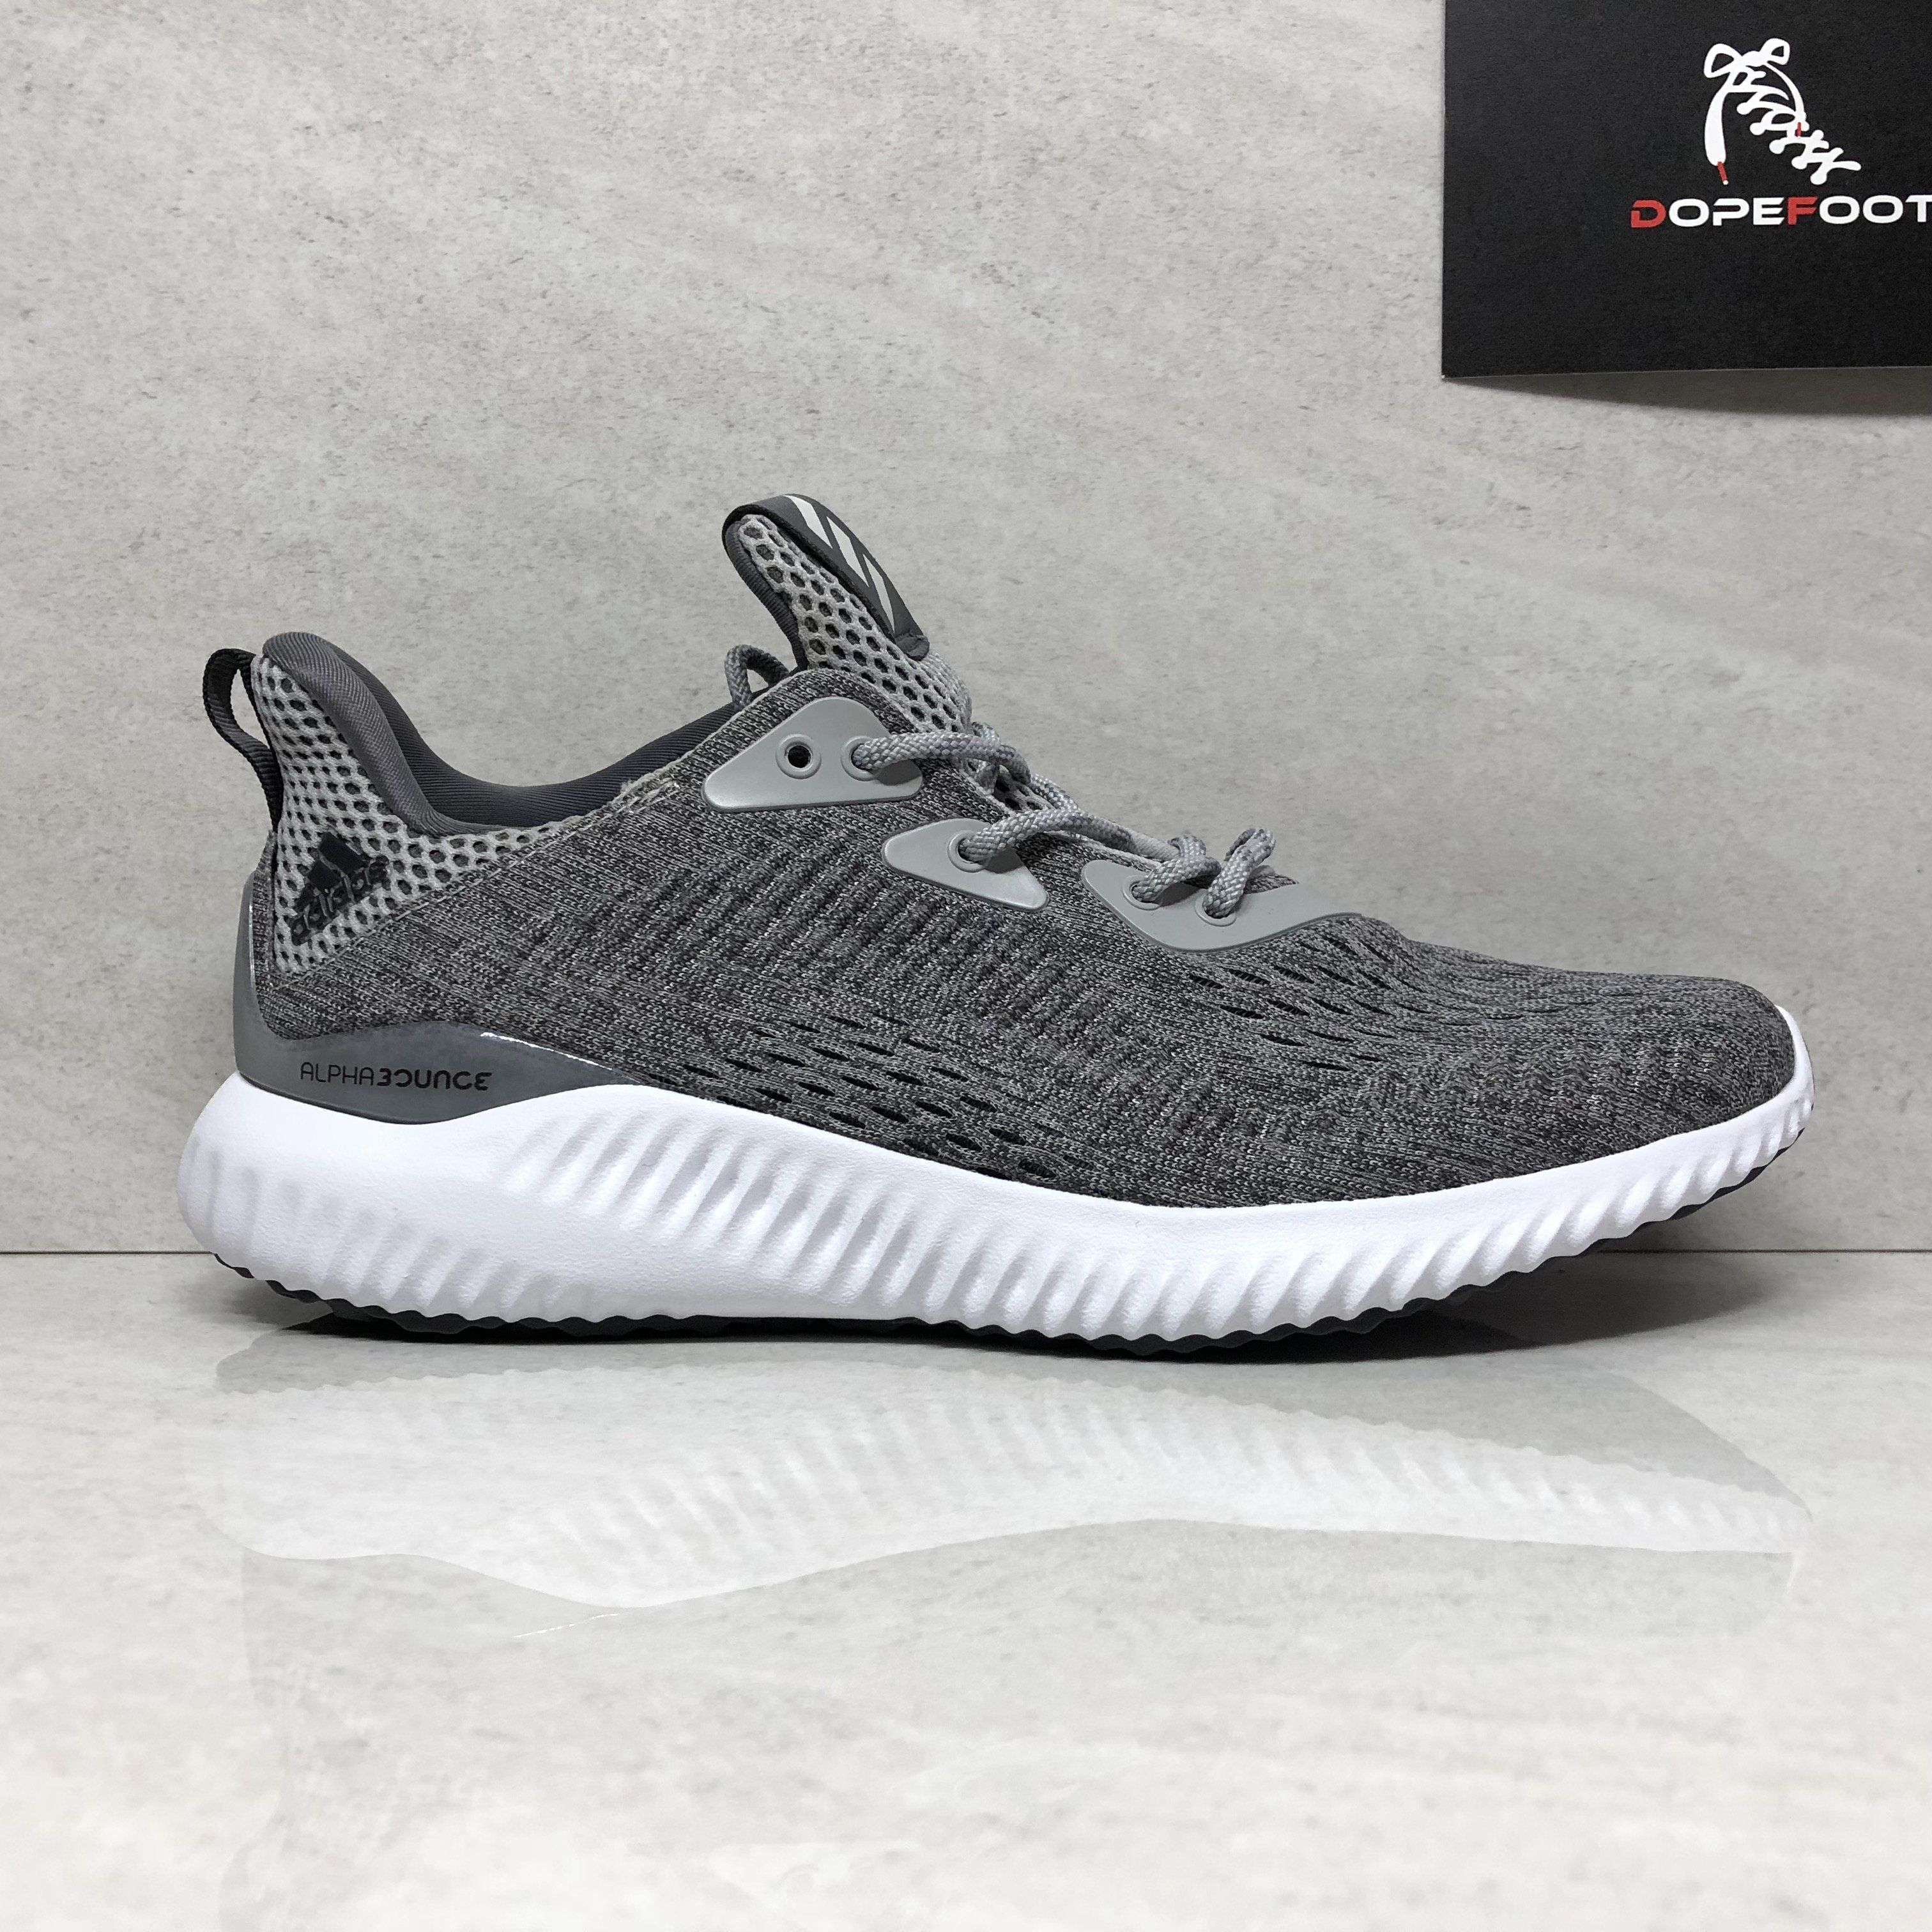 on sale e005e 5458d Buy Adidas Yeezy 2 330 Generation 330 Alphabounce M Alpha Jacquard Surface  Running Shoes High Quality Grey New Release from Reliable Adidas Yeezy 2  330 ...